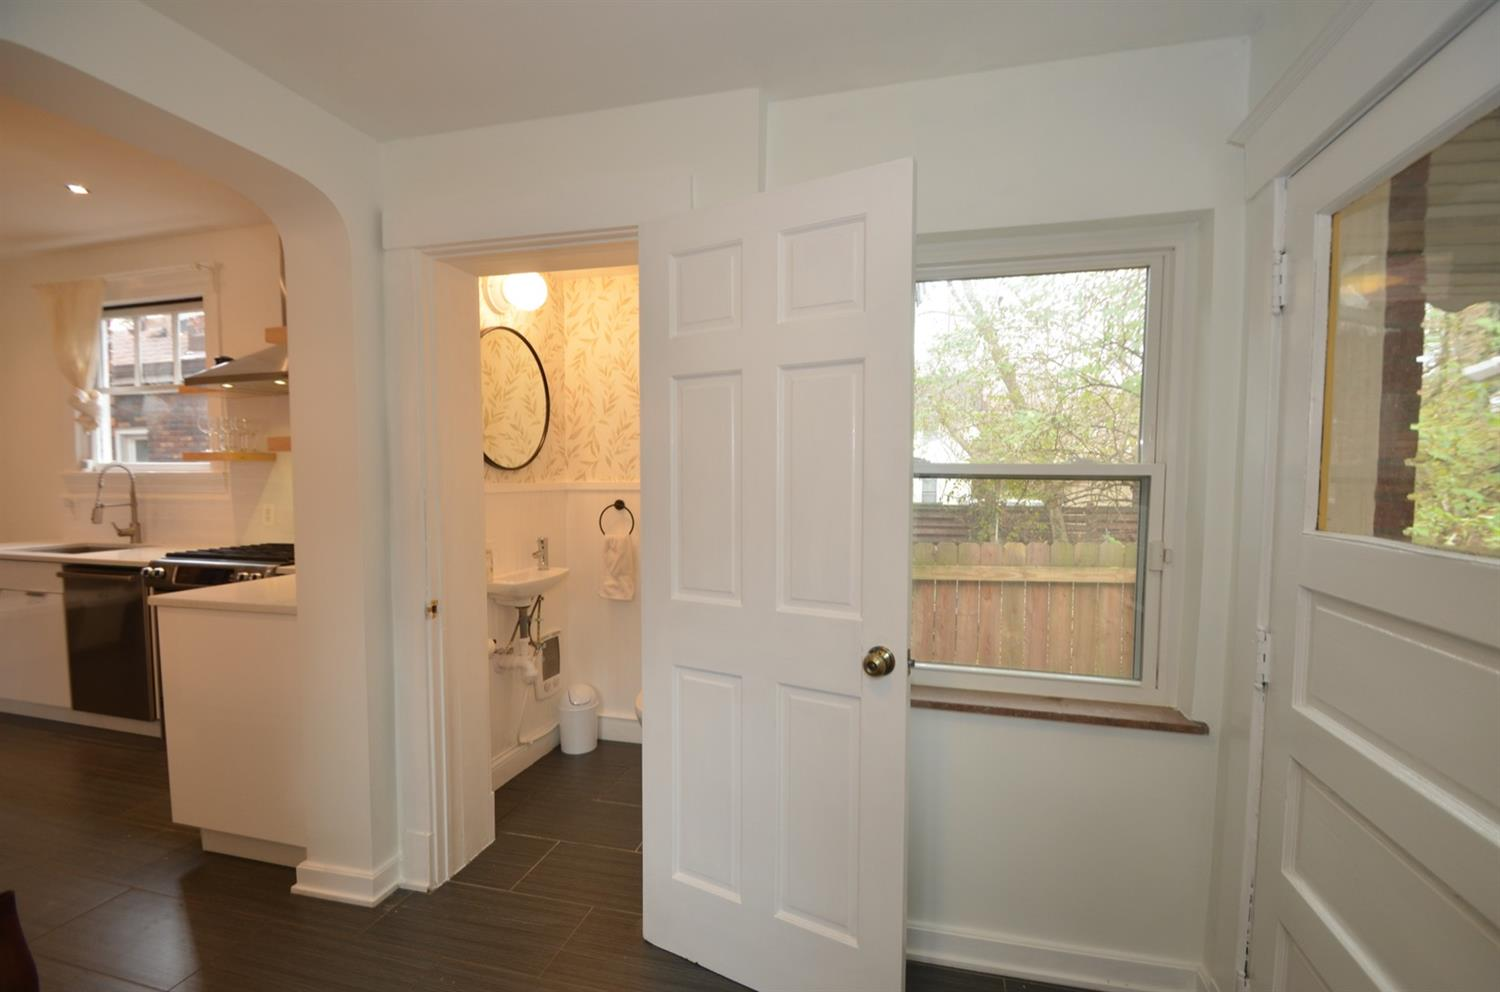 And between the mudroom and the kitchen is this NEW powder room!